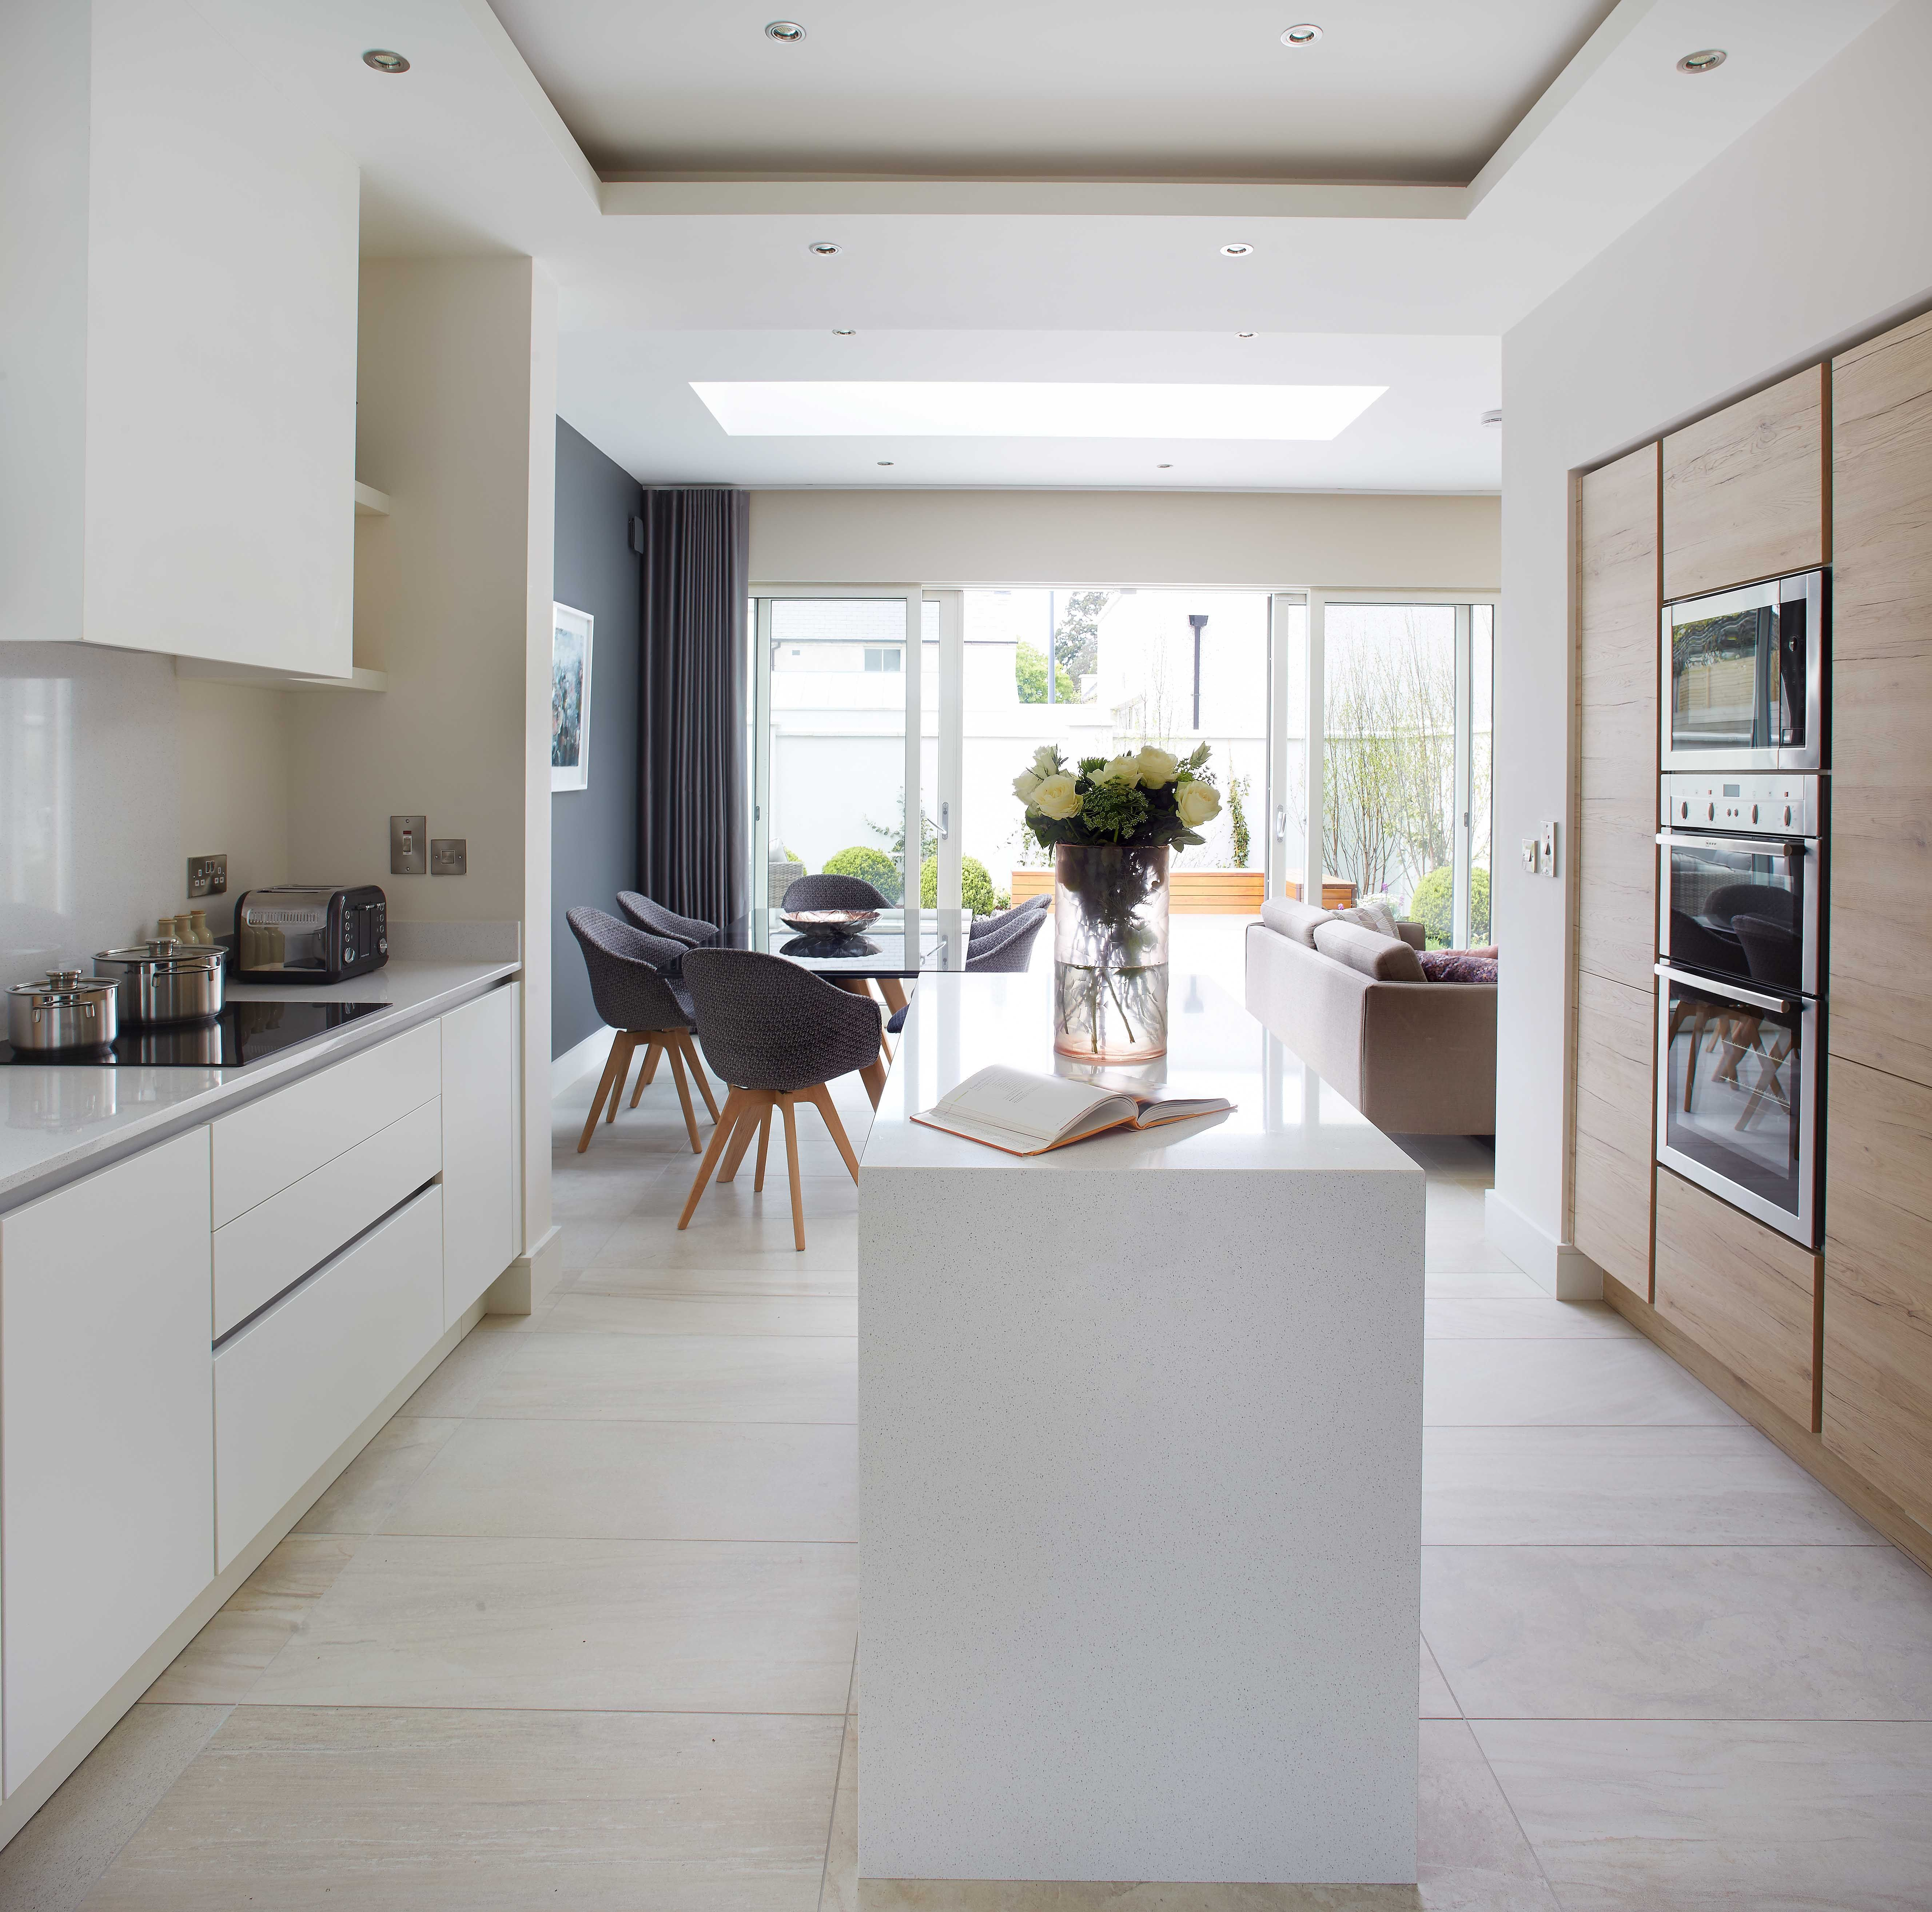 Optimise design were appointed as design consultants for the albany